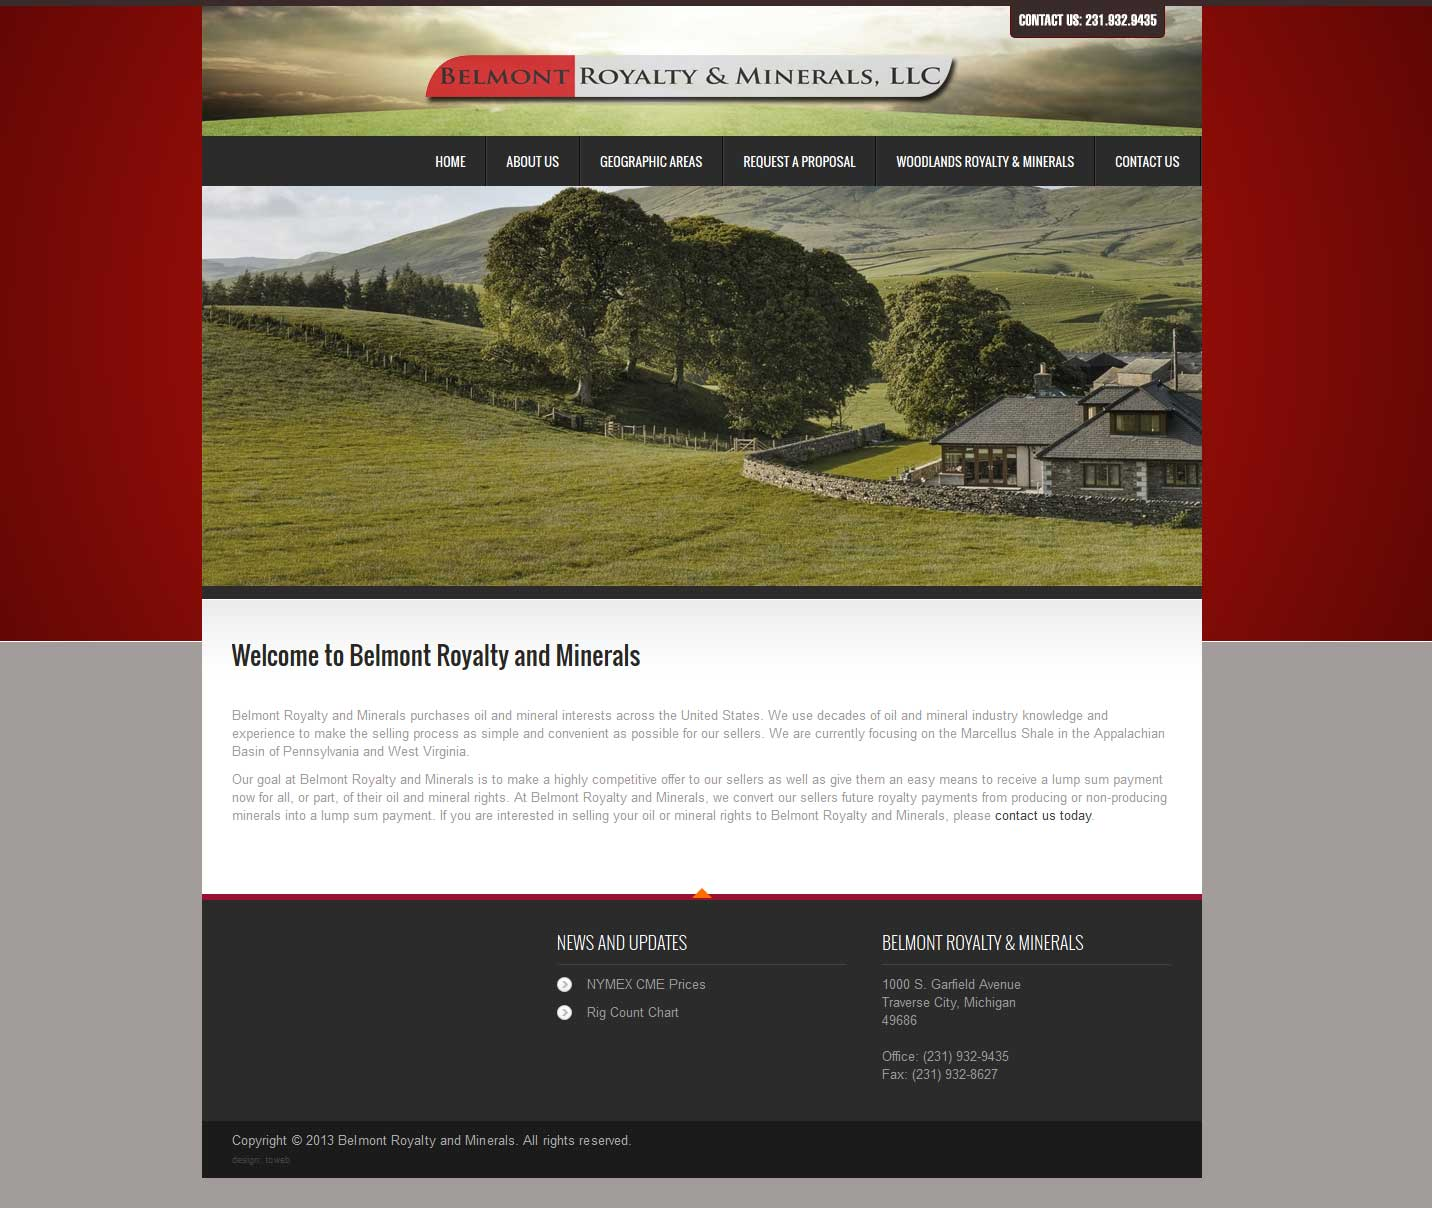 Web Design Portfolio | Belmont Royalty and Minerals, LLC